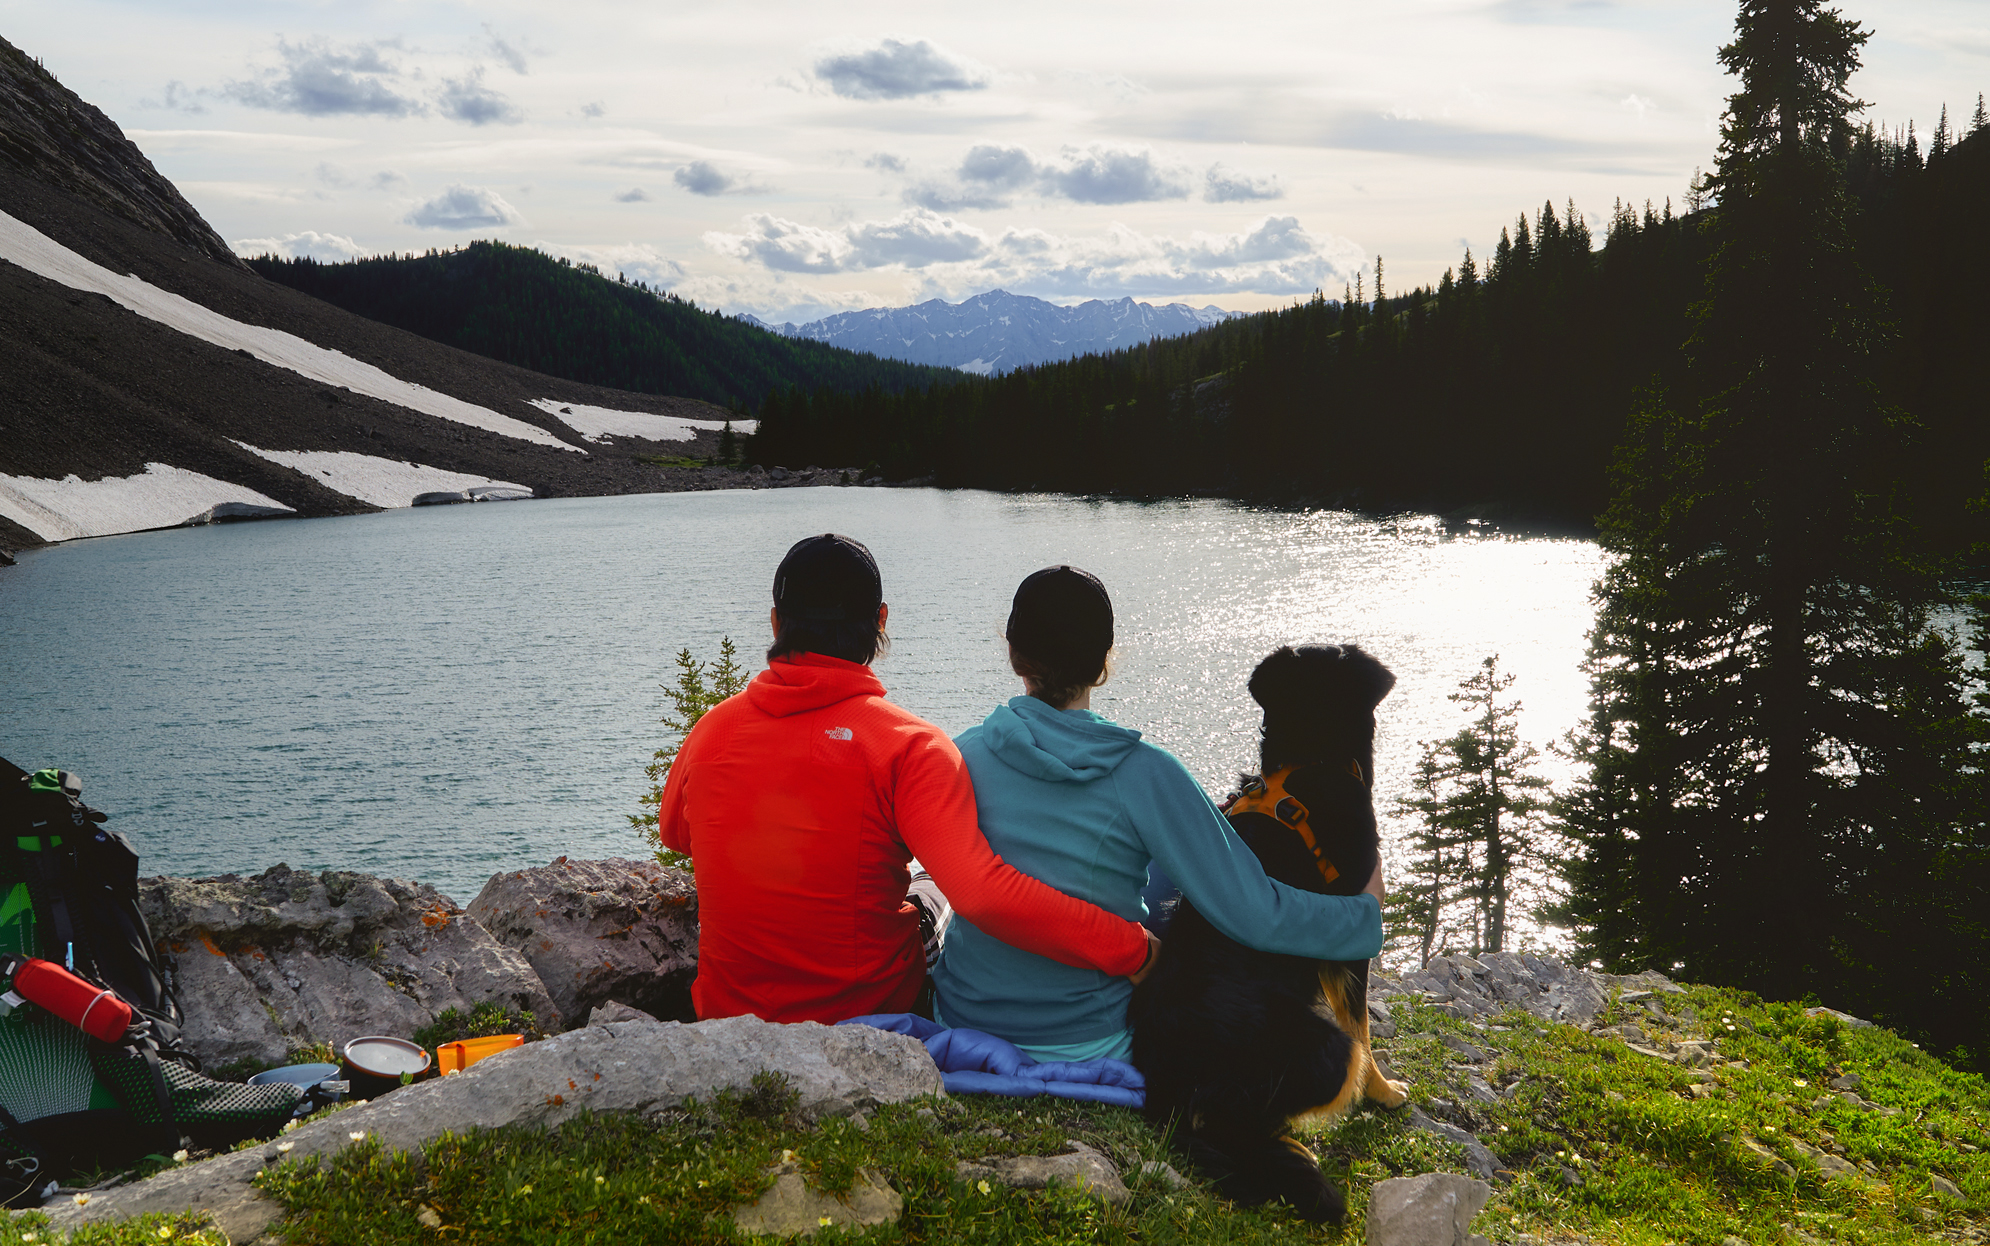 Two hikers and a black dog sit facing Pickle Jar lakes in the late afternoon in Kananaskis Country